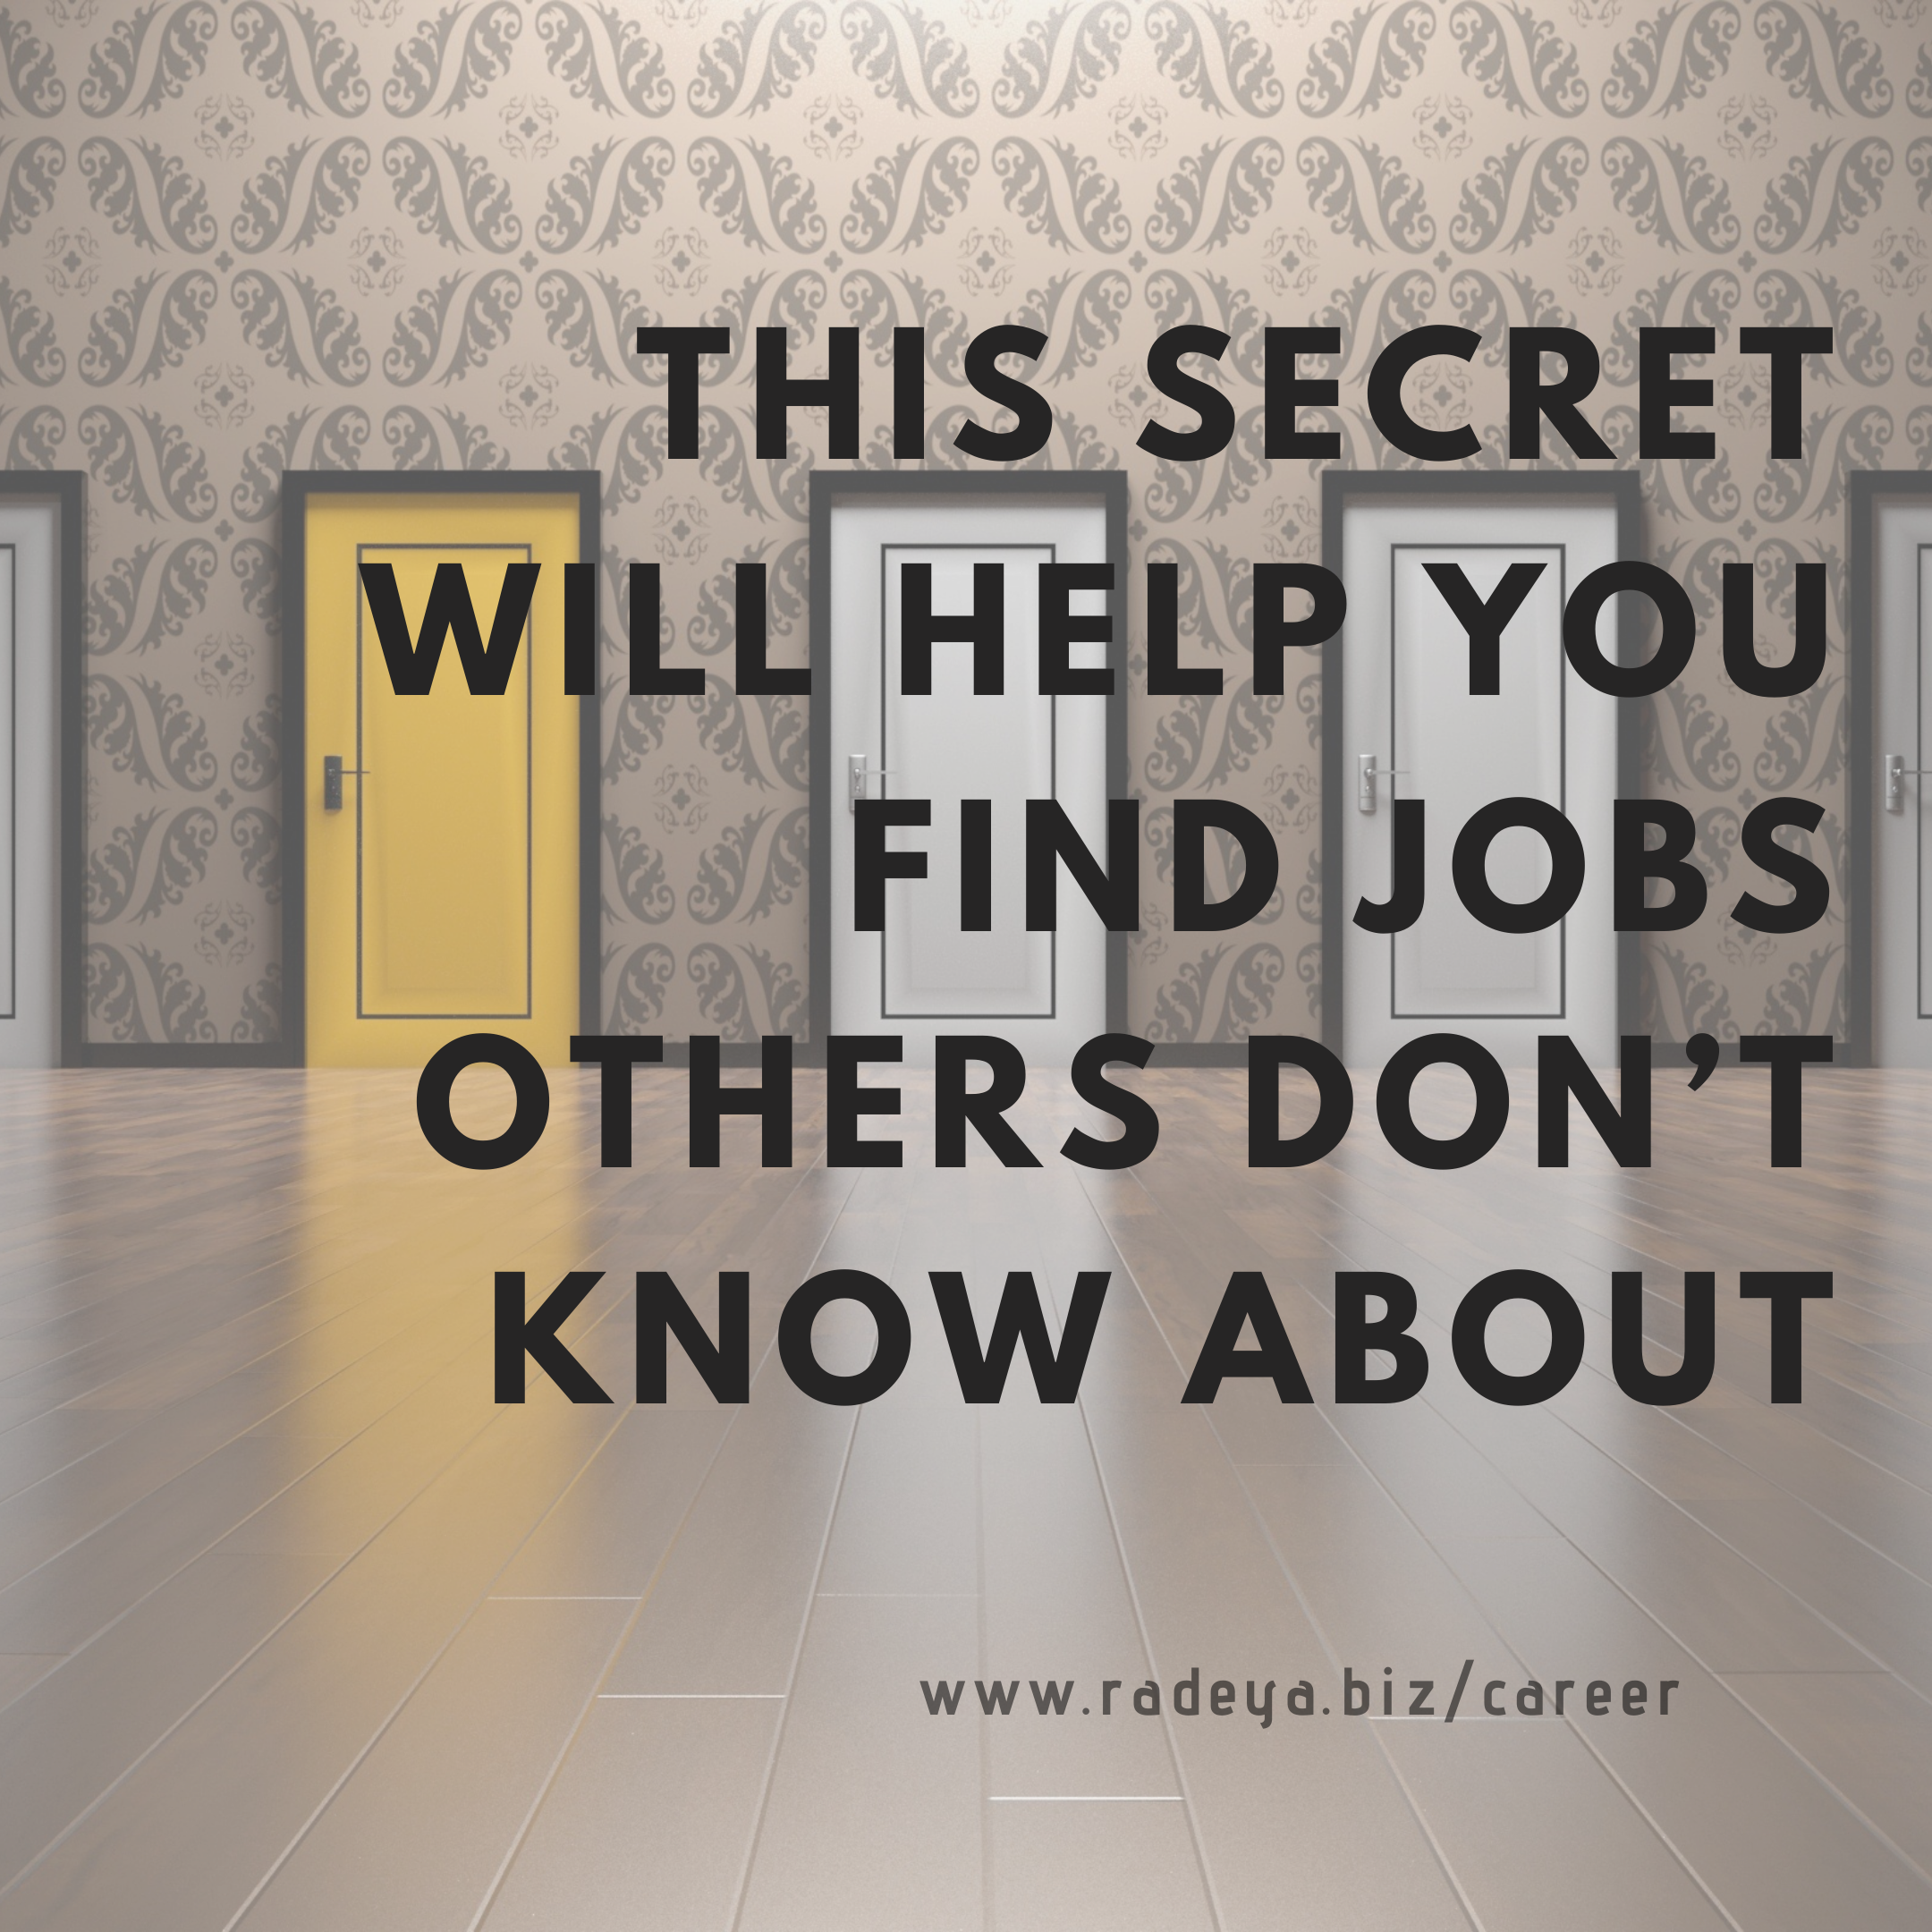 How to find jobs others don't know about